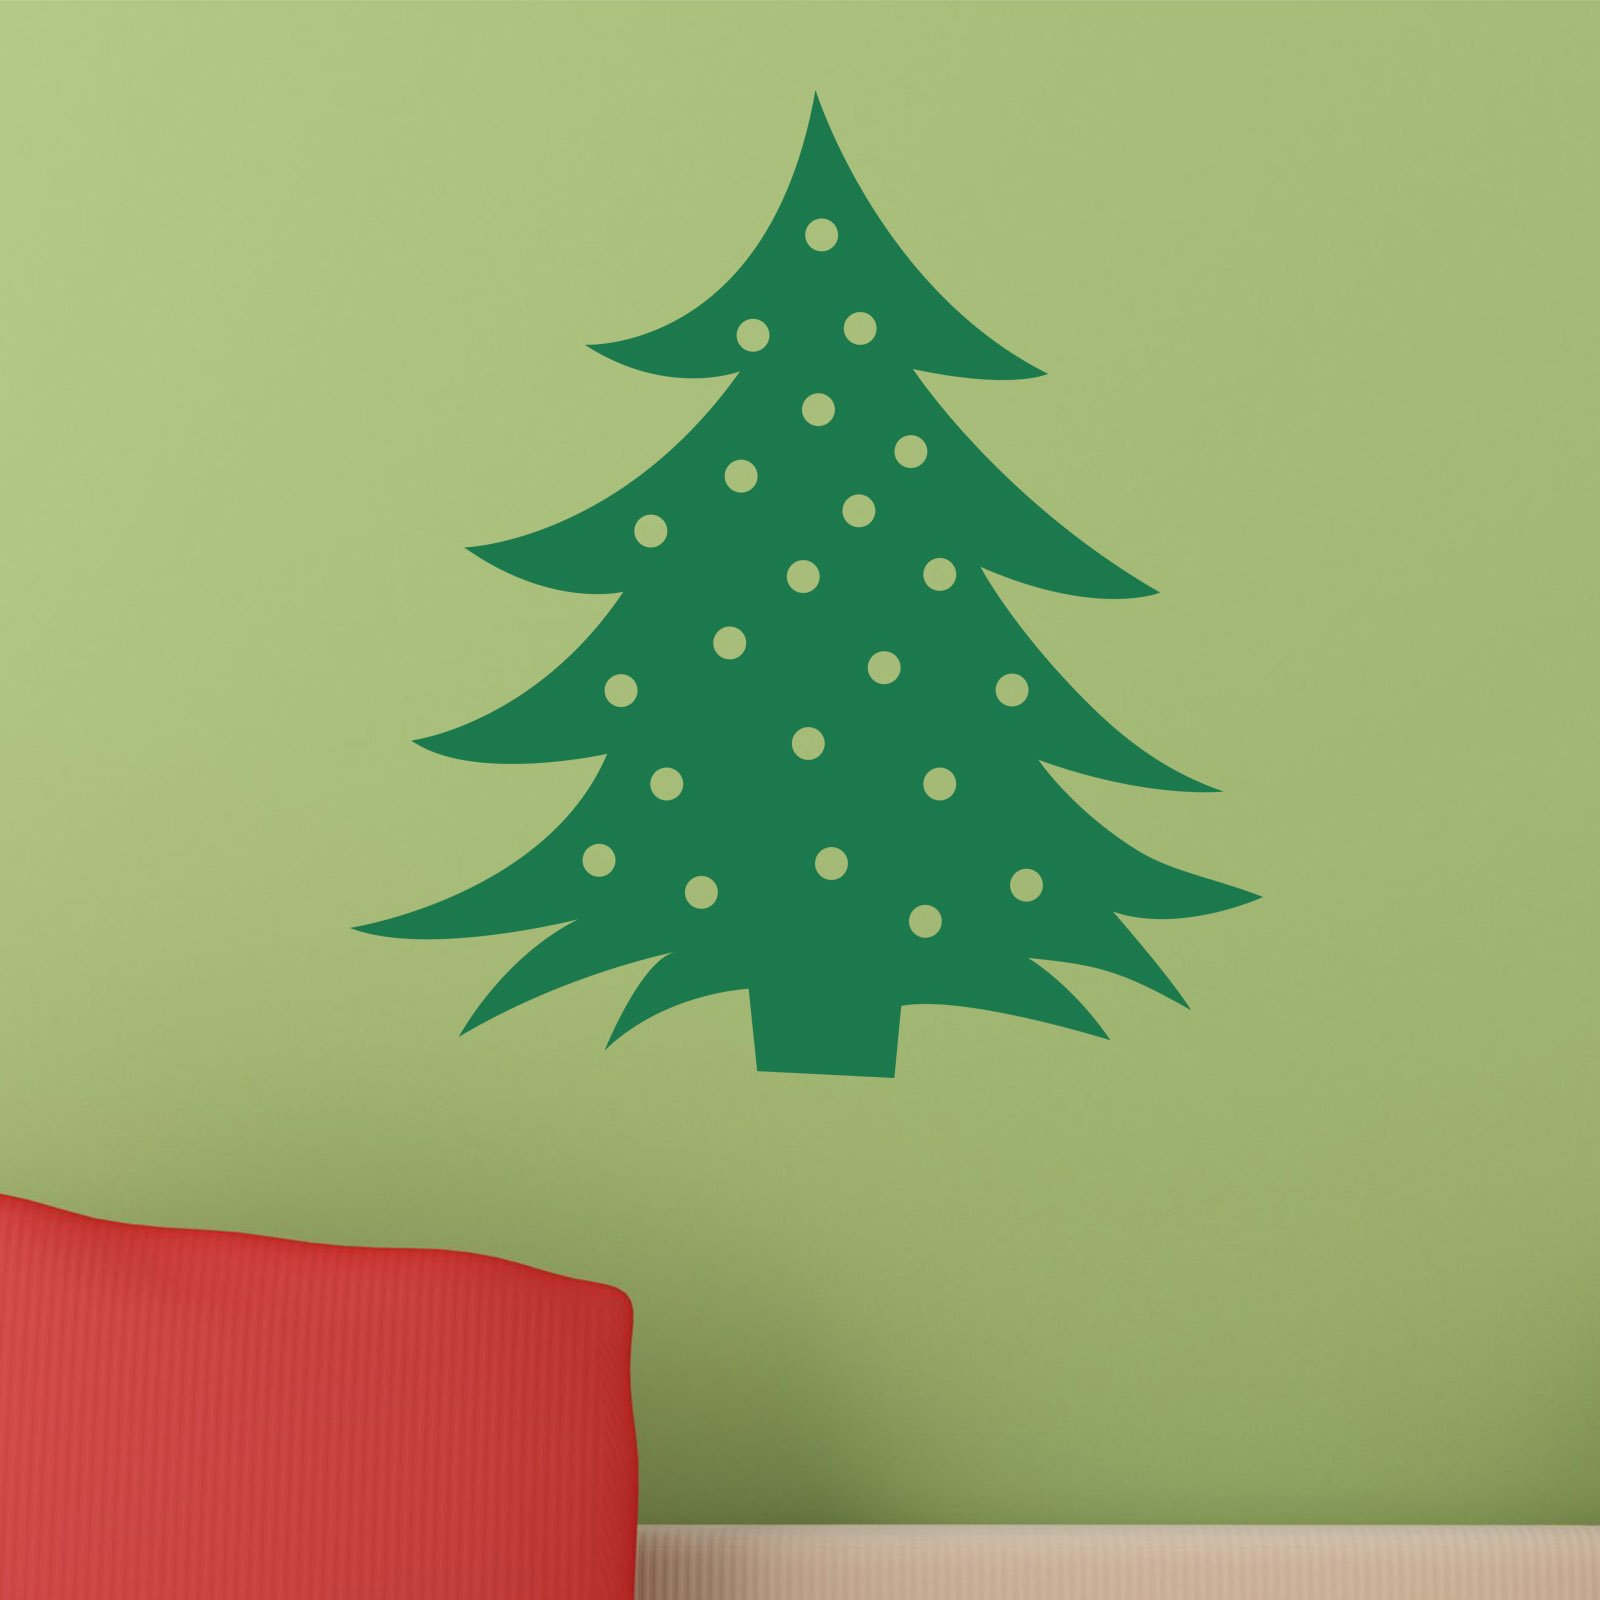 christmas tree with baubles wall sticker world of wall fabric patterned christmas tree wall sticker by spin